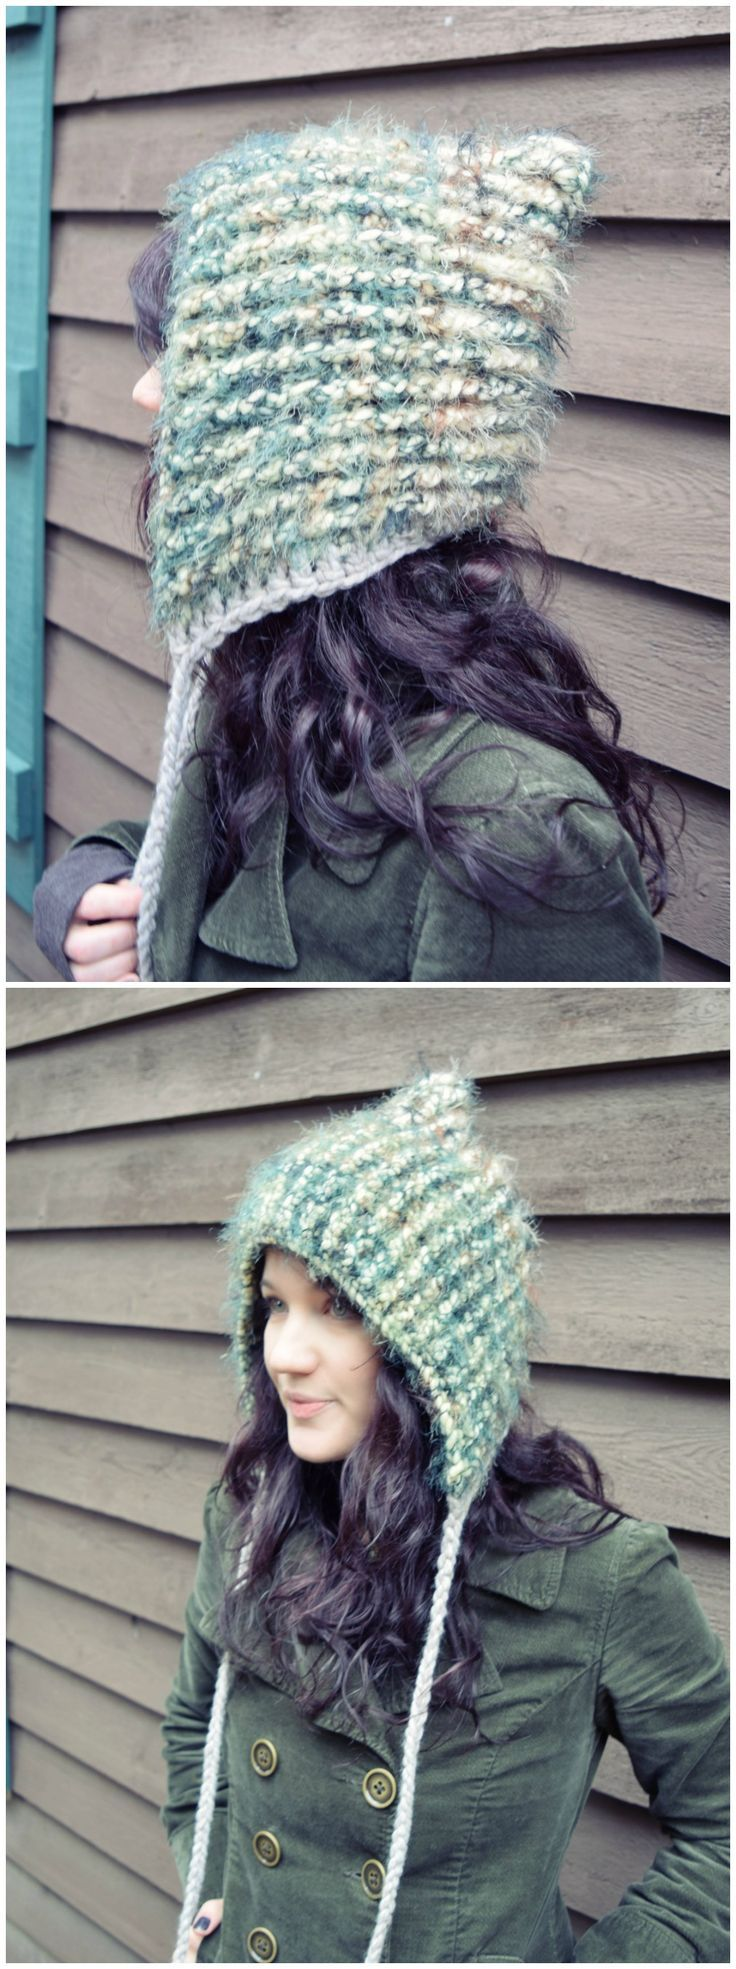 Post Stitch Pixie Hat free crochet pattern